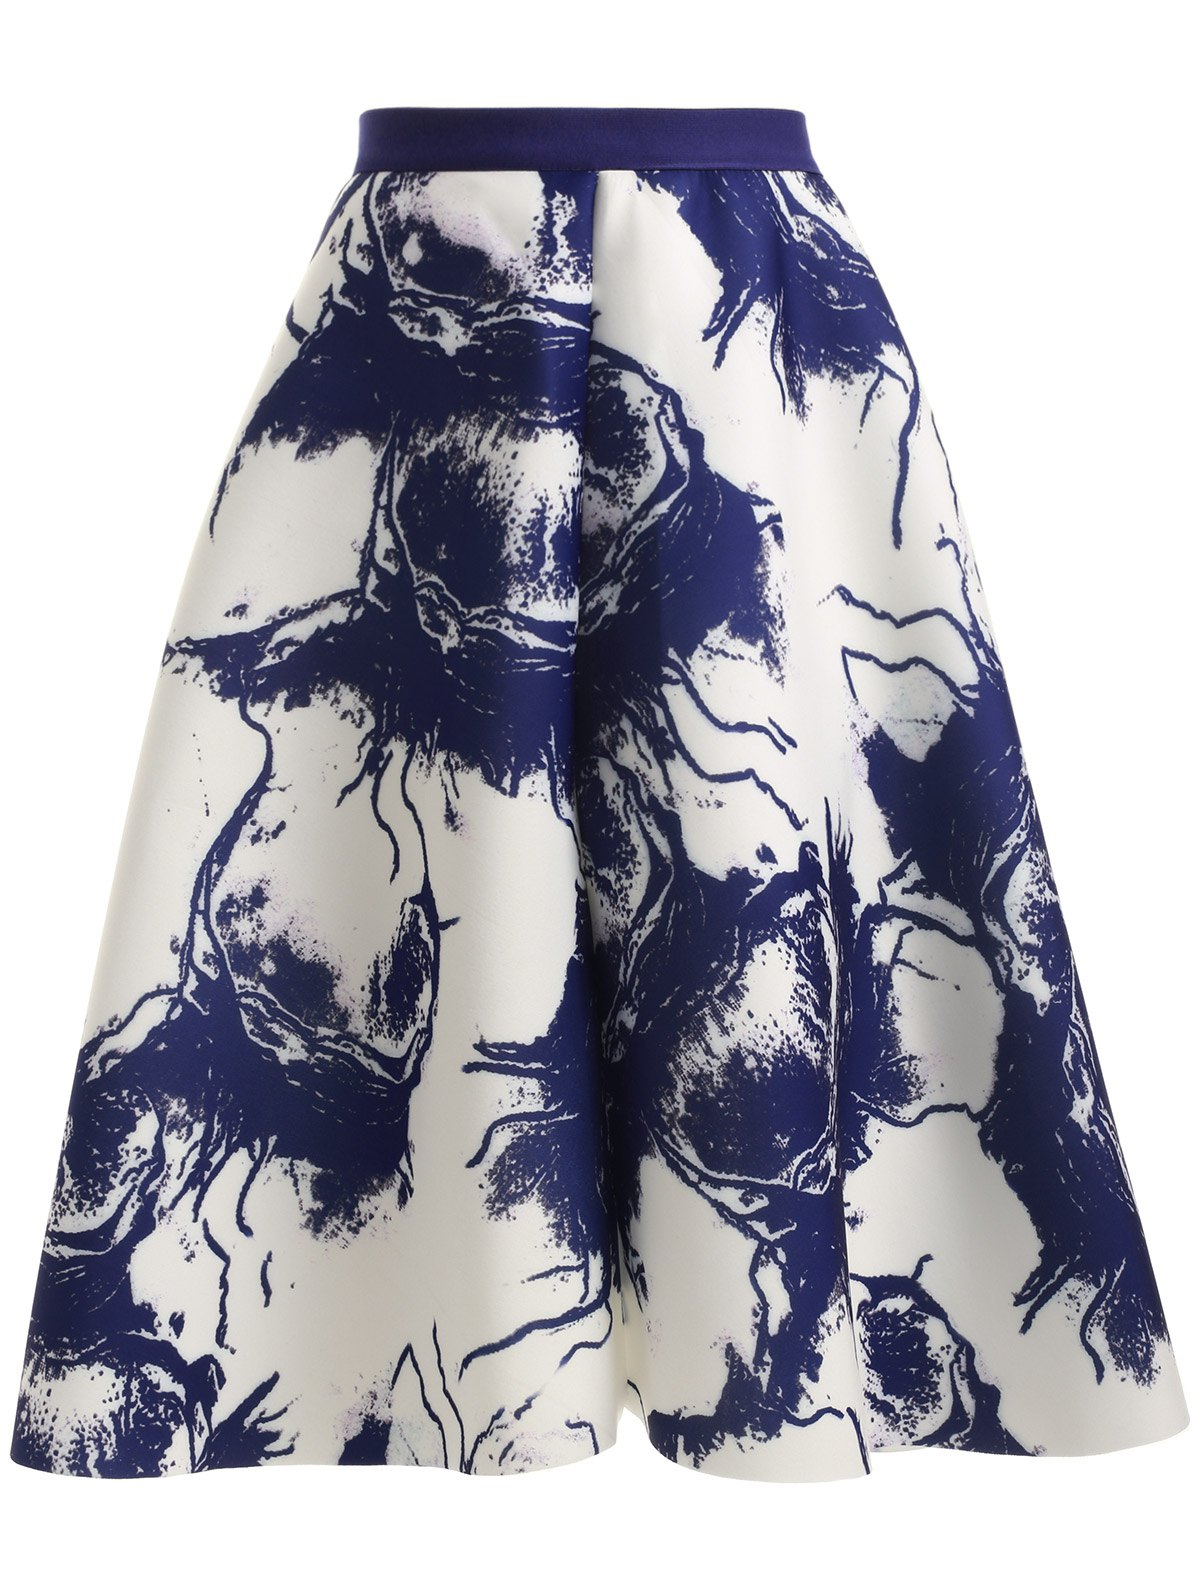 High Waisted Ink Painting SkirtClothes<br><br><br>Size: ONE SIZE<br>Color: BLUE AND WHITE